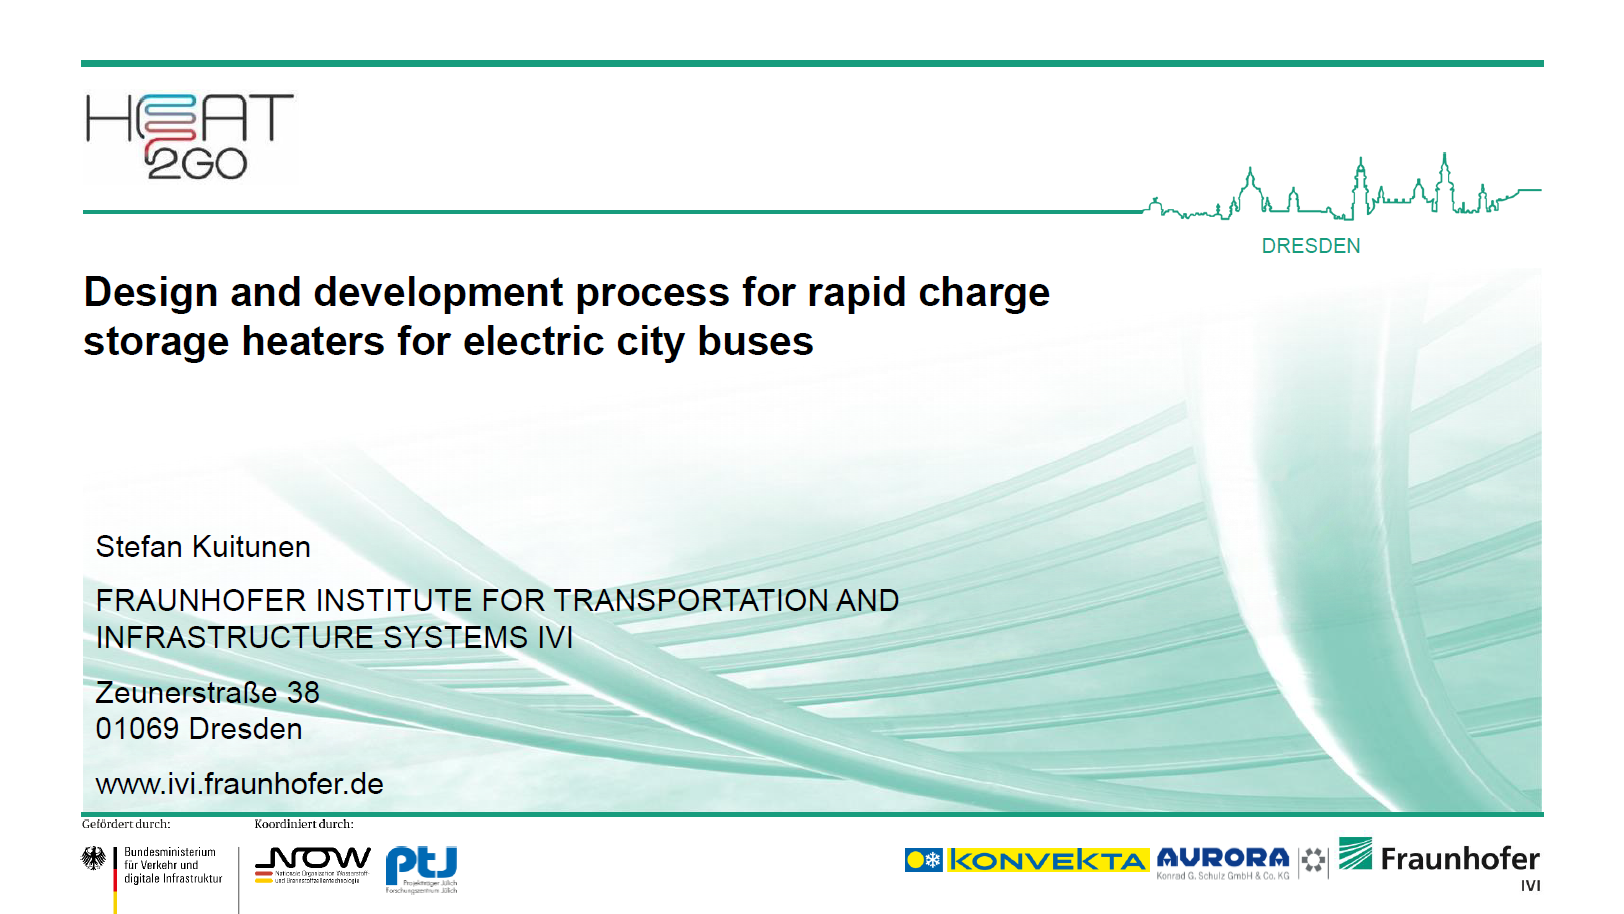 Presentation on the design and development process for rapid charge storage heaters for electric buses